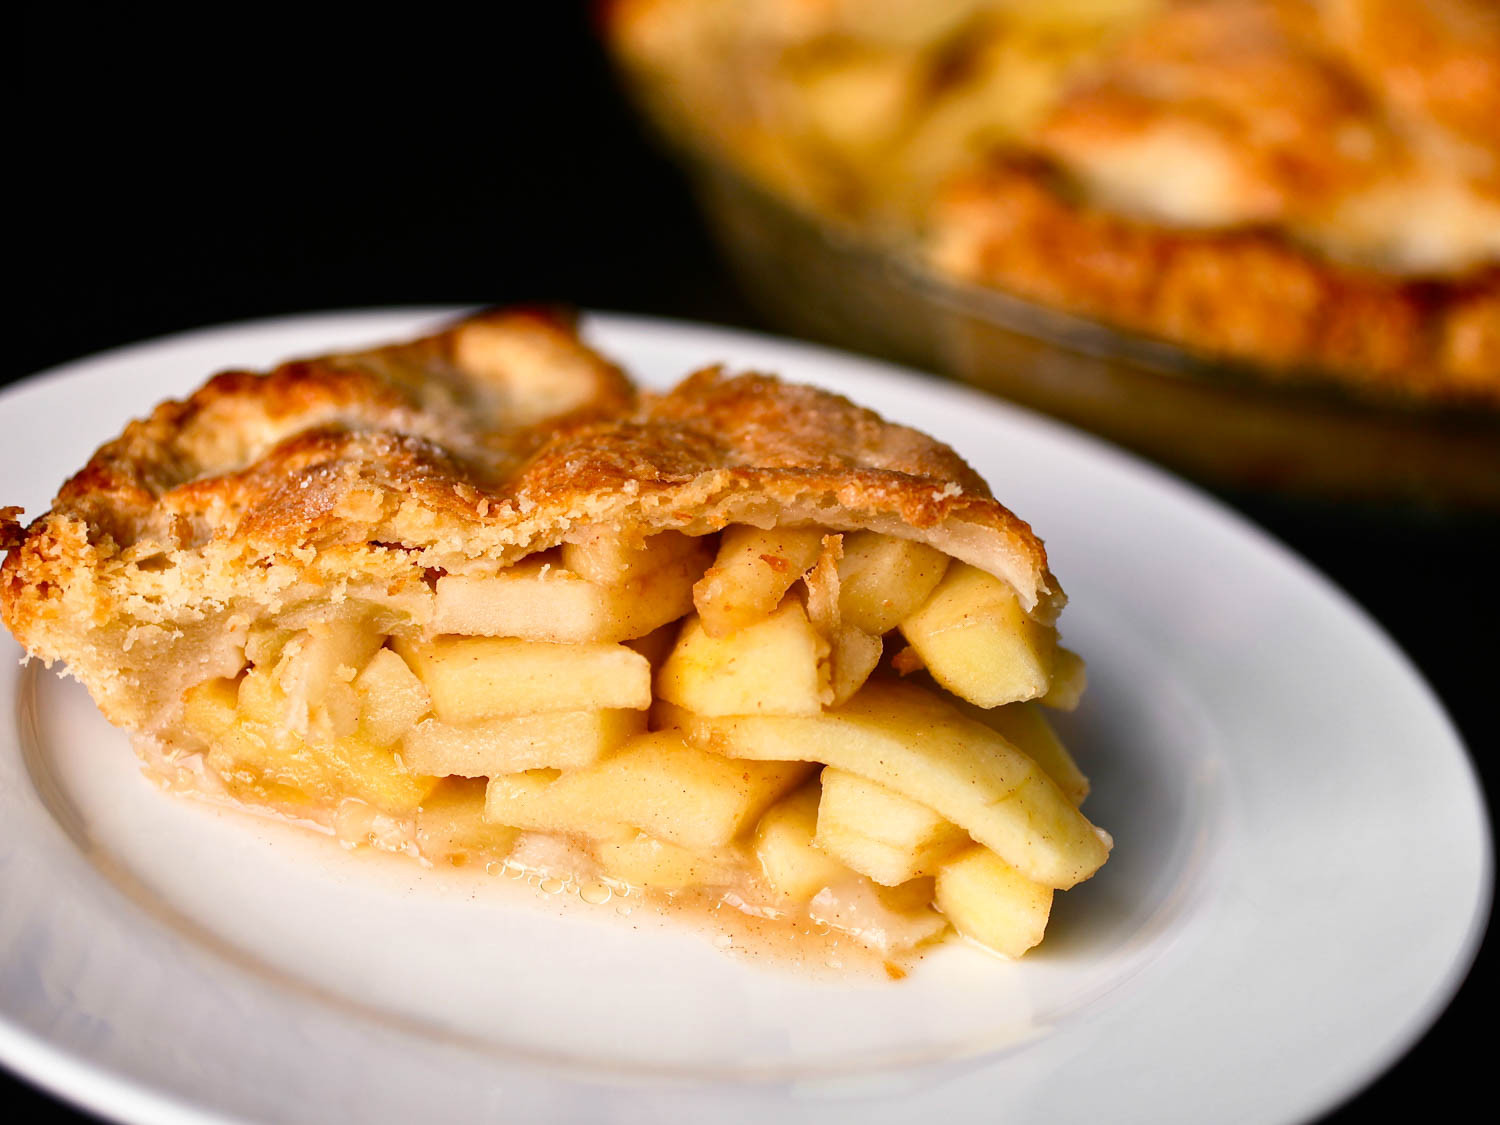 Best Apple For Apple Pie  The Food Lab s Apple Pie Part 1 What Are the Best Apples